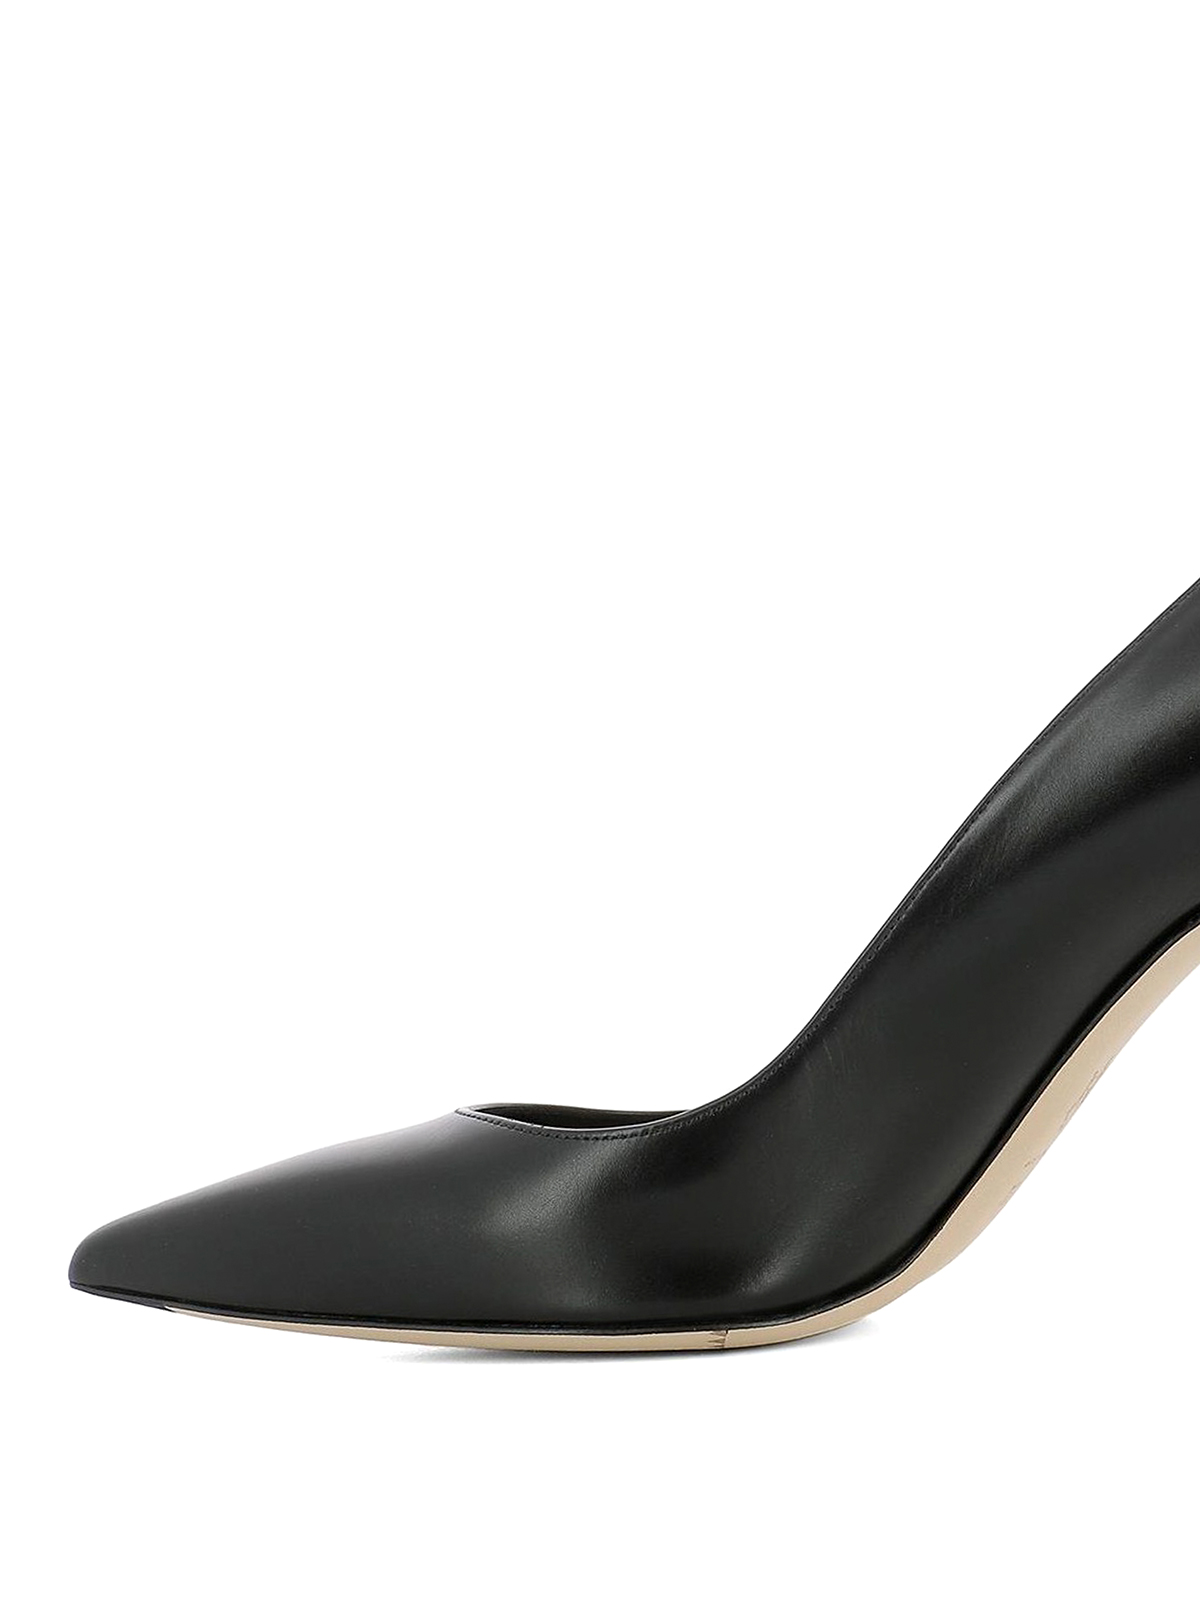 78758dc108d7 iKRIX-alexander-mcqueen-court-shoes -curved-heel-leather-pumps-00000126796f00s013.jpg